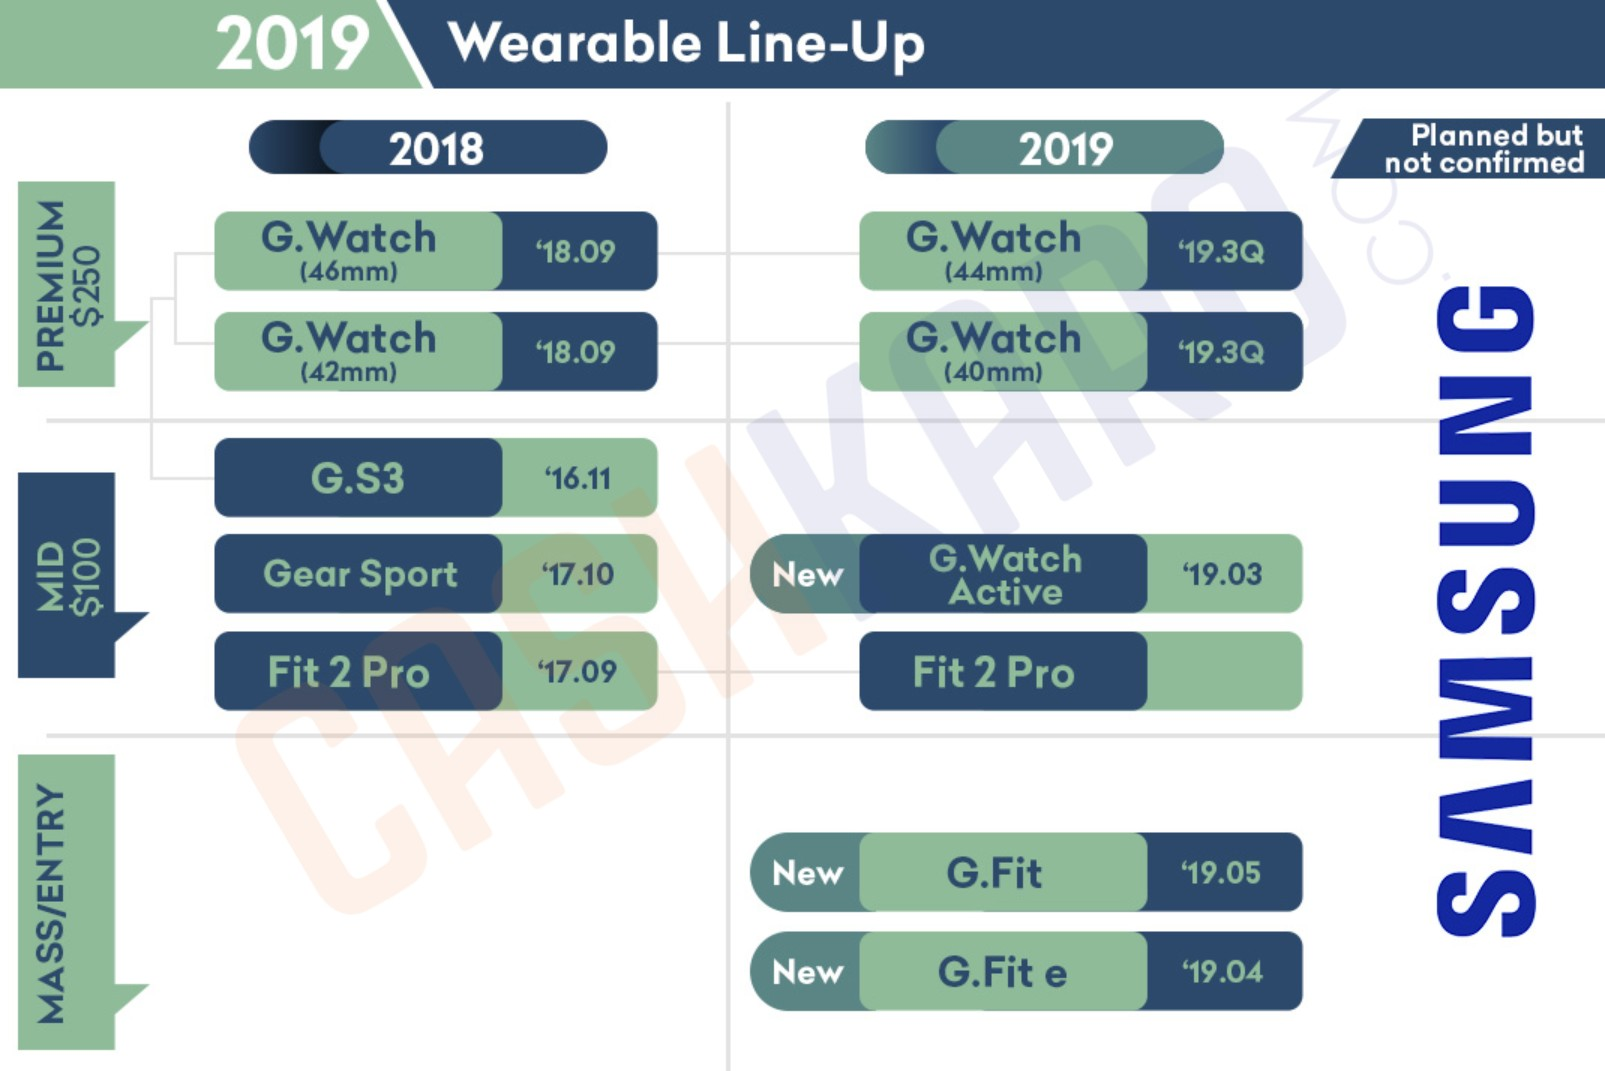 Samsung Wearable Lineup